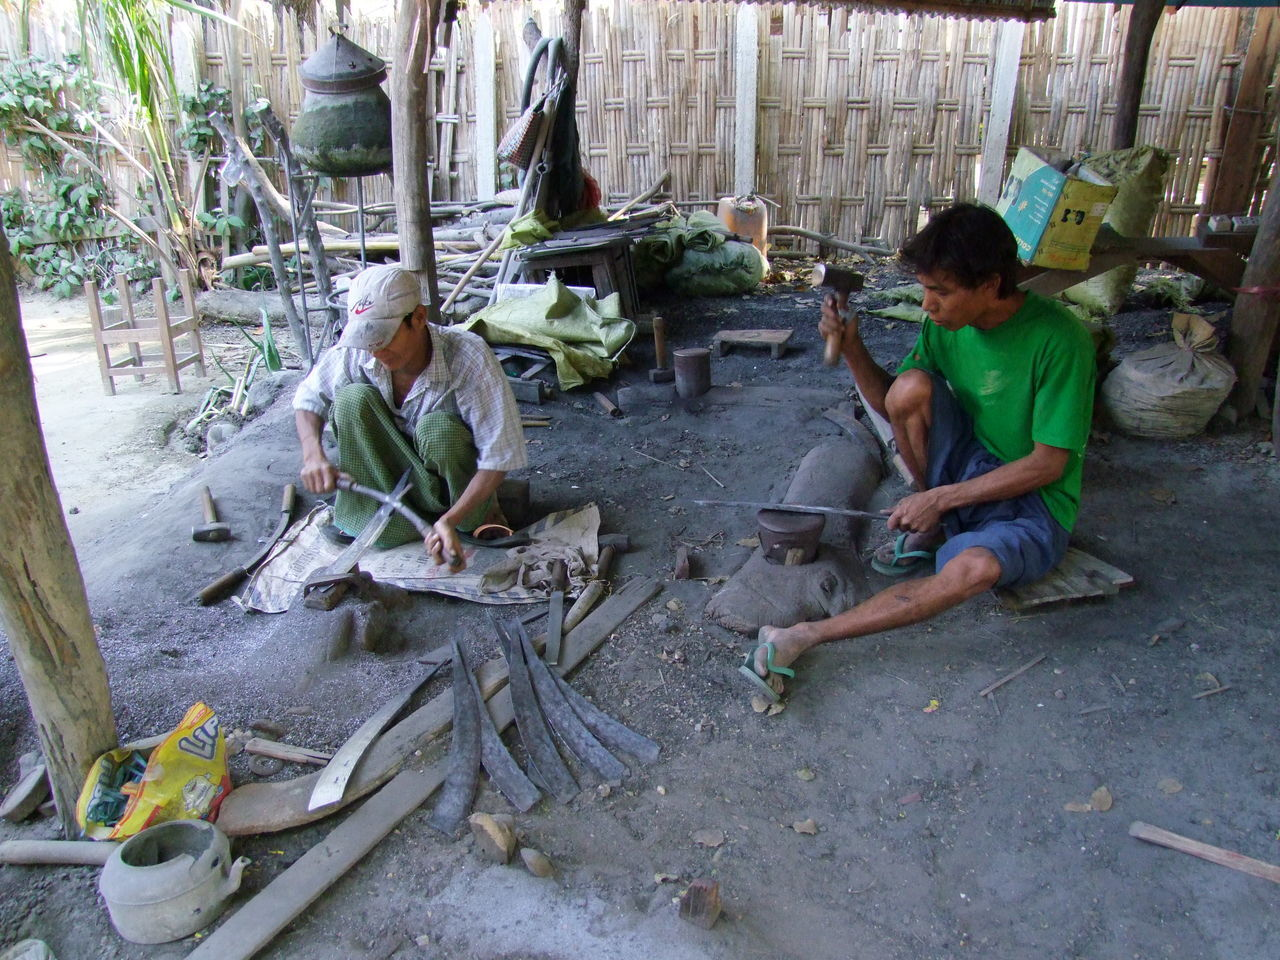 Making Knives in Tanyaung Village Composition Full Frame Full Length Hard At Work Hard Work High Angle View Making A Living Making Knives Manufacturing Men Working Men Working Hard Myanmar Outdoor Photography Real People Sitting Sunlight And Shade Tanyaung Village Traditional Clothing Two Men Two Men At Work Village Village Life Village Lifestyle Working